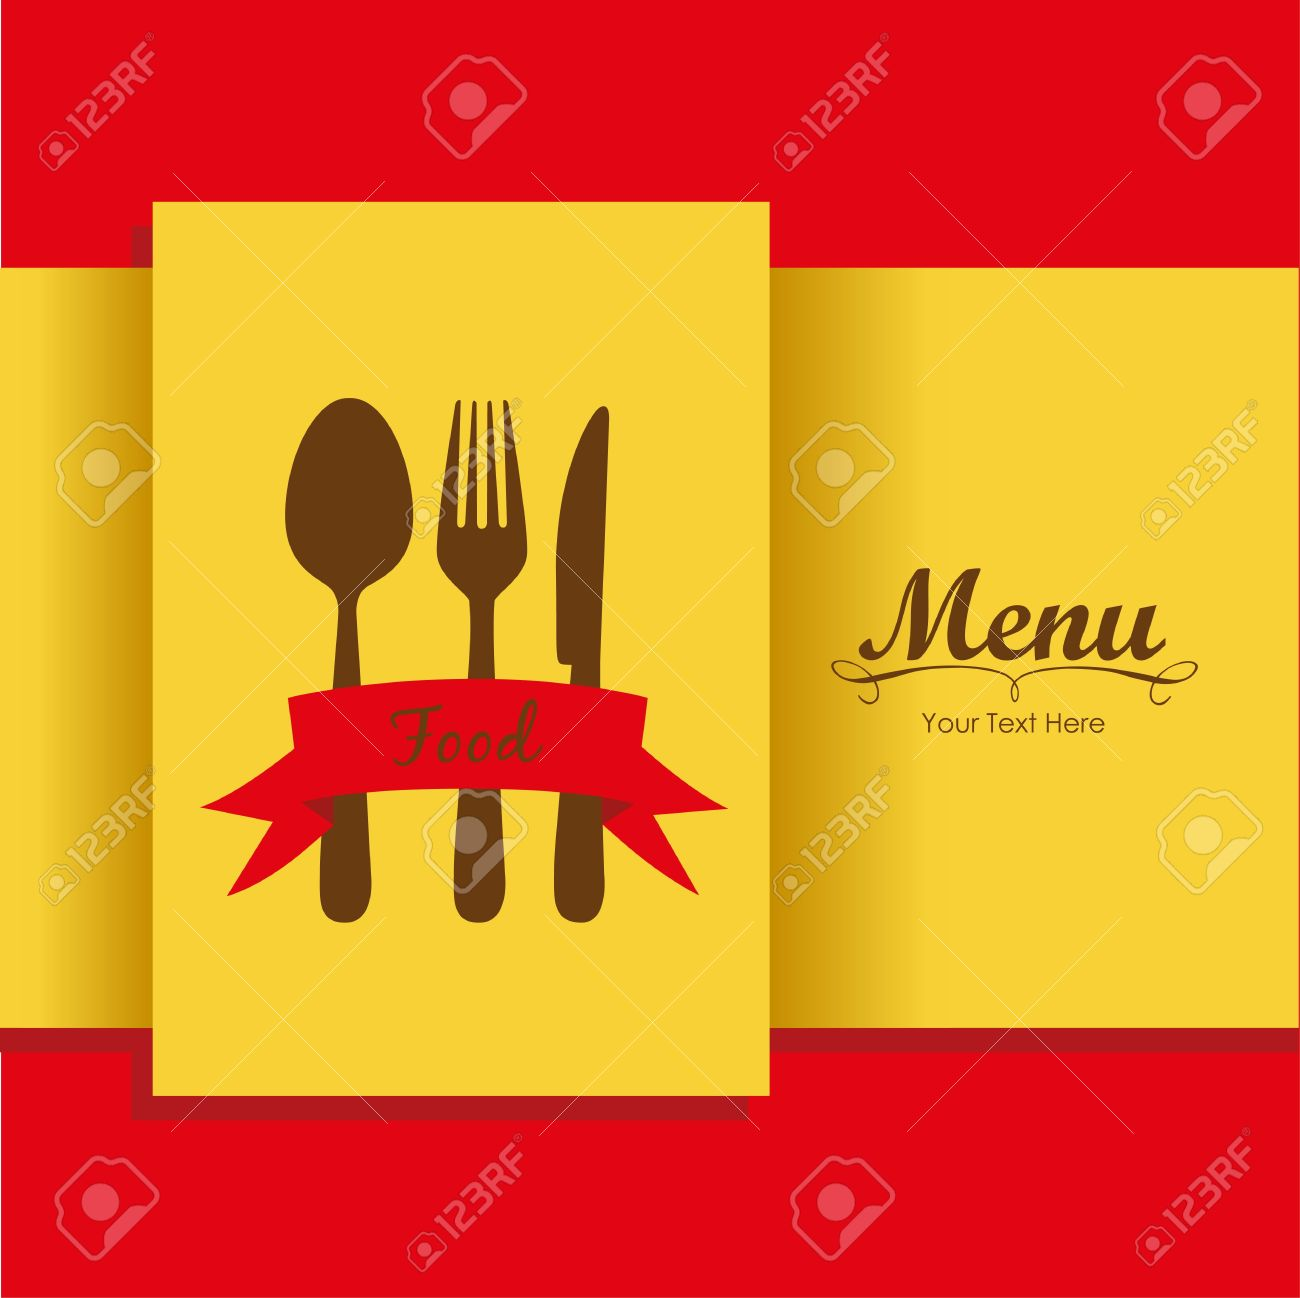 Elegant card for restaurant menu, with spoon, knife and fork vector illustration Stock Vector - 14345187